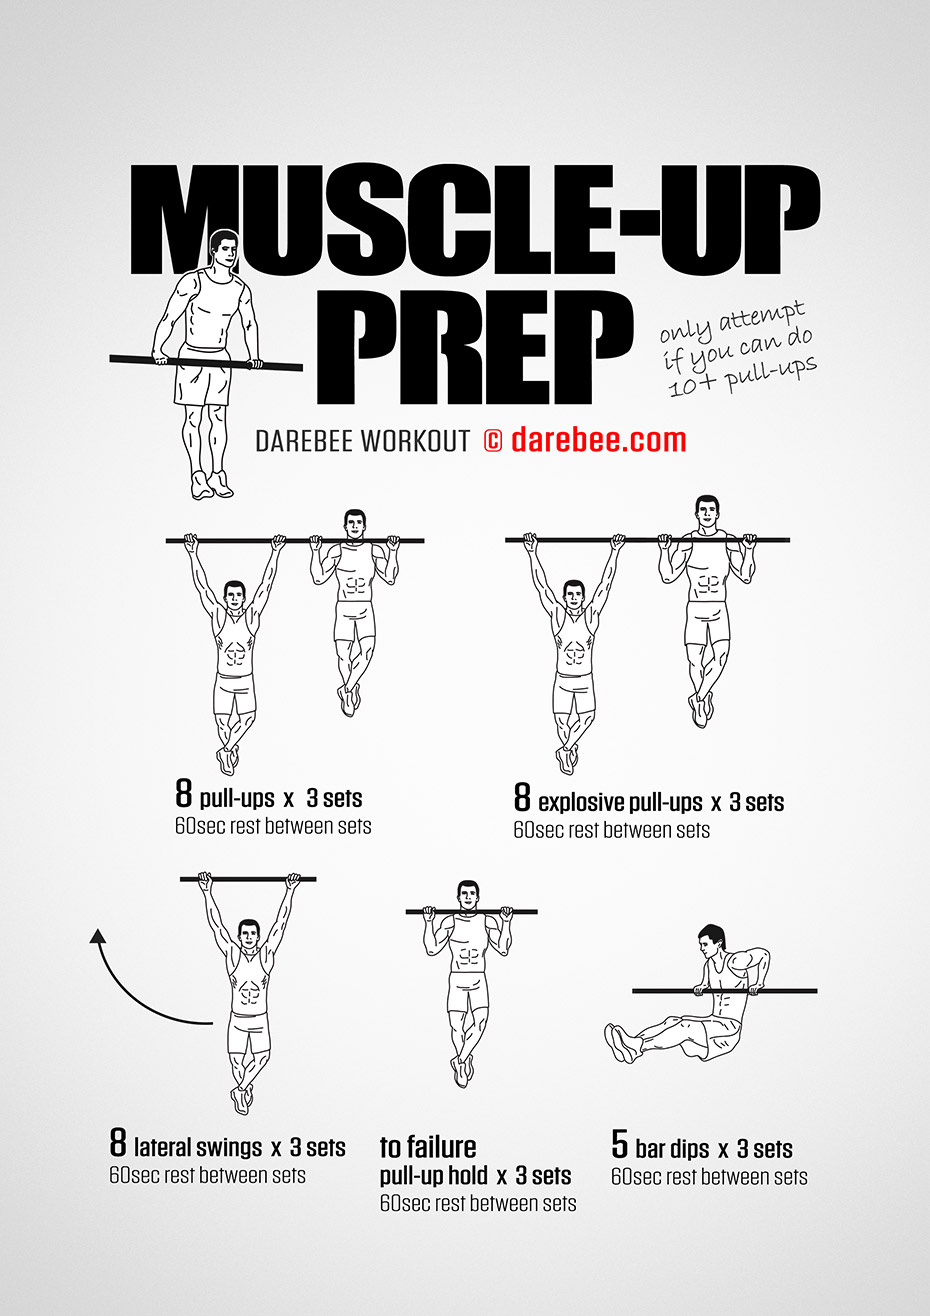 Muscle-Up Prep Workout